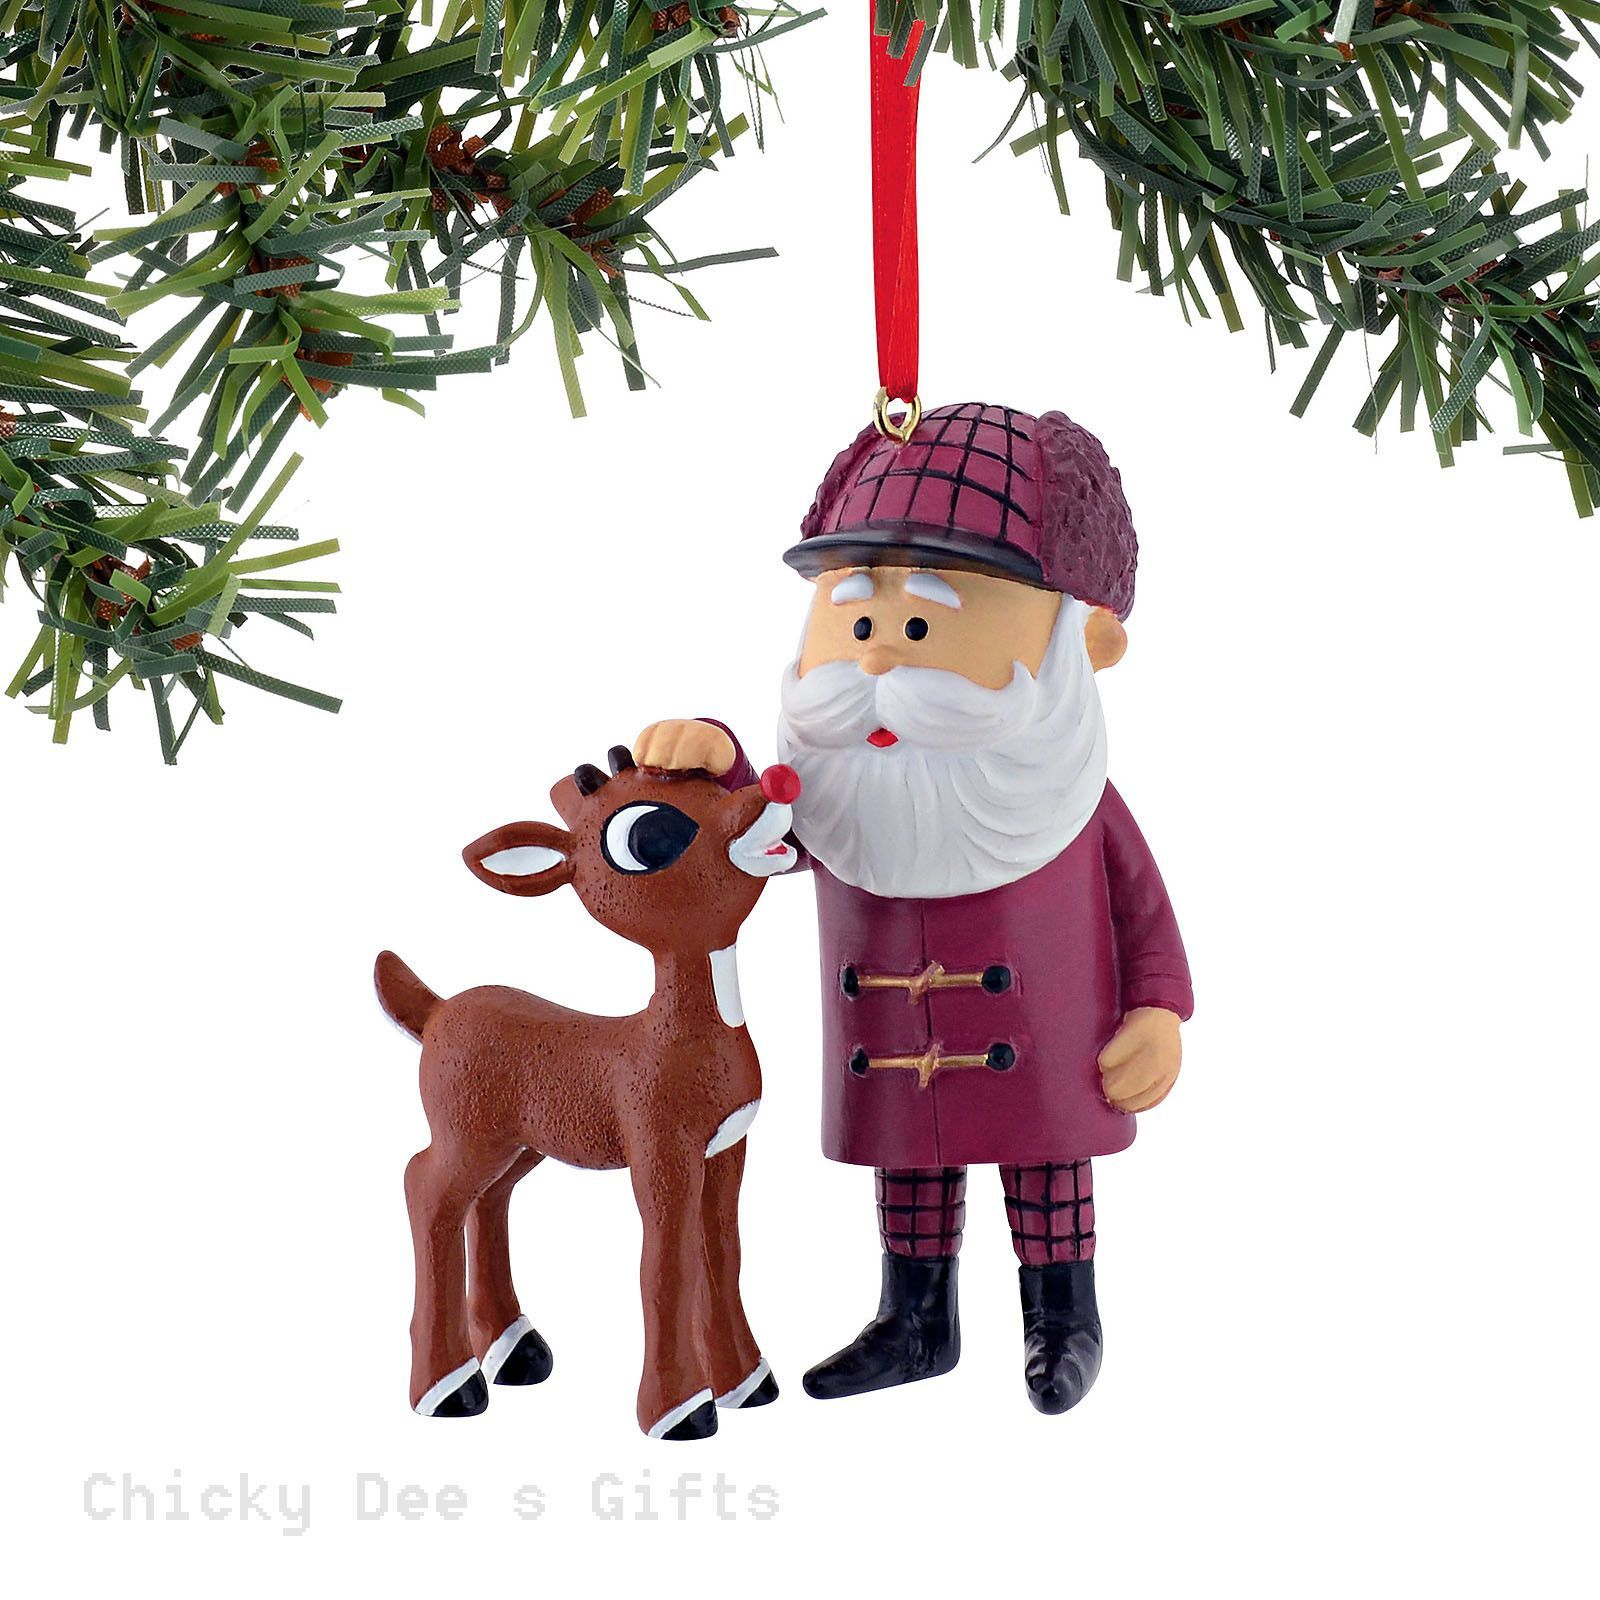 Rudolph Red Nose Reindeer Rudolph and Santa Ornament 4050047 NEW 2015